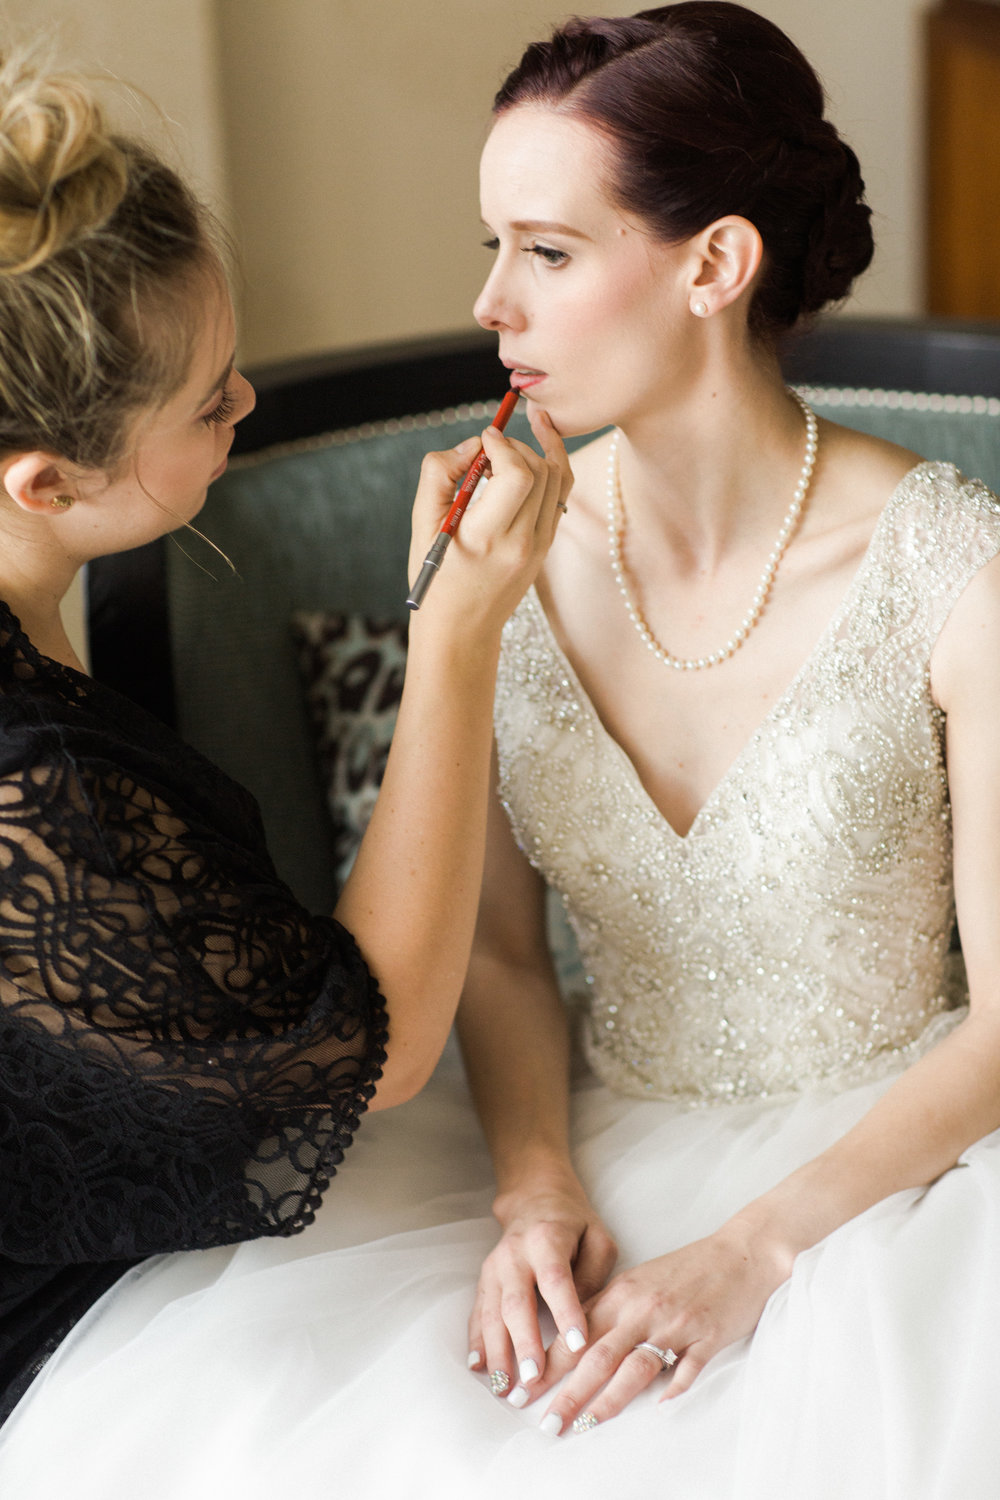 kim baker beauty san jose california makeup artist apply urban decause red lip liner to bride for her classic bridal look beaded cap sleeve wedding gown